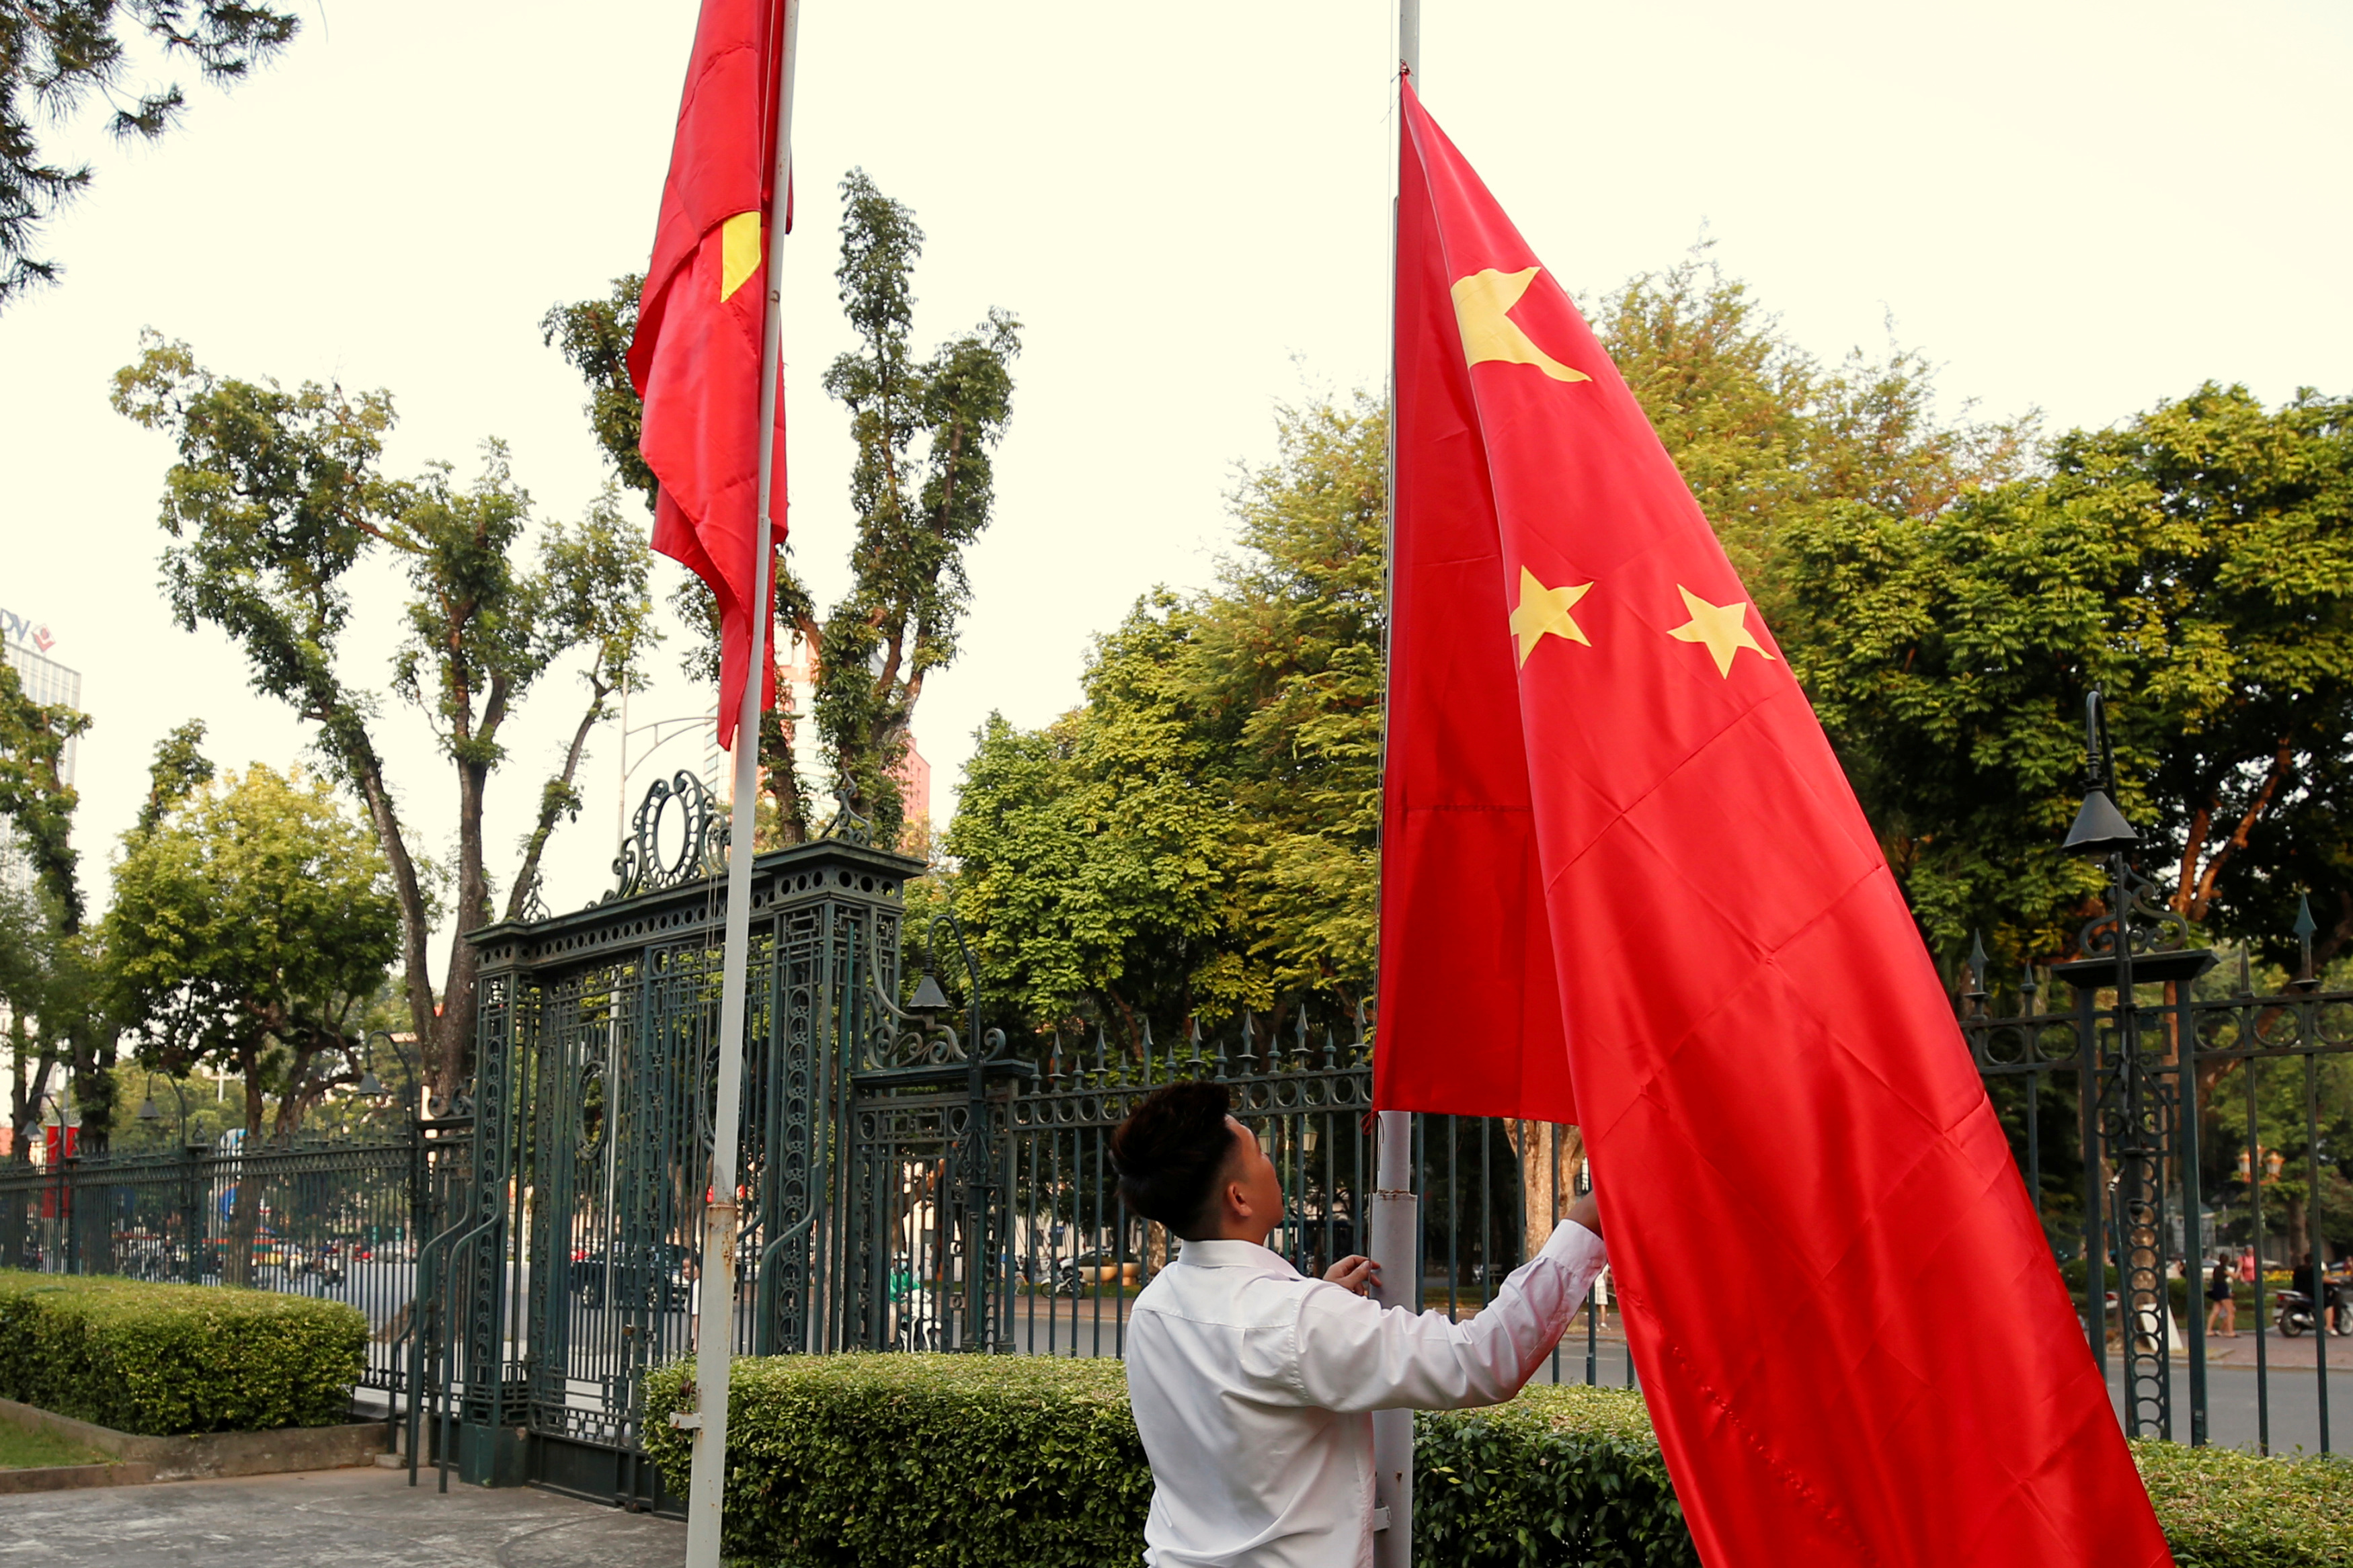 FILE PHOTO: A man raises a Chinese flag (R) next to a Vietnamese flag before a meeting between China's Foreign Minister Wang Yi and Vietnam's Deputy Prime Minister and Foreign Minister Pham Binh Minh at the Government Office in Hanoi, Vietnam November 2, 2017. REUTERS/Kham